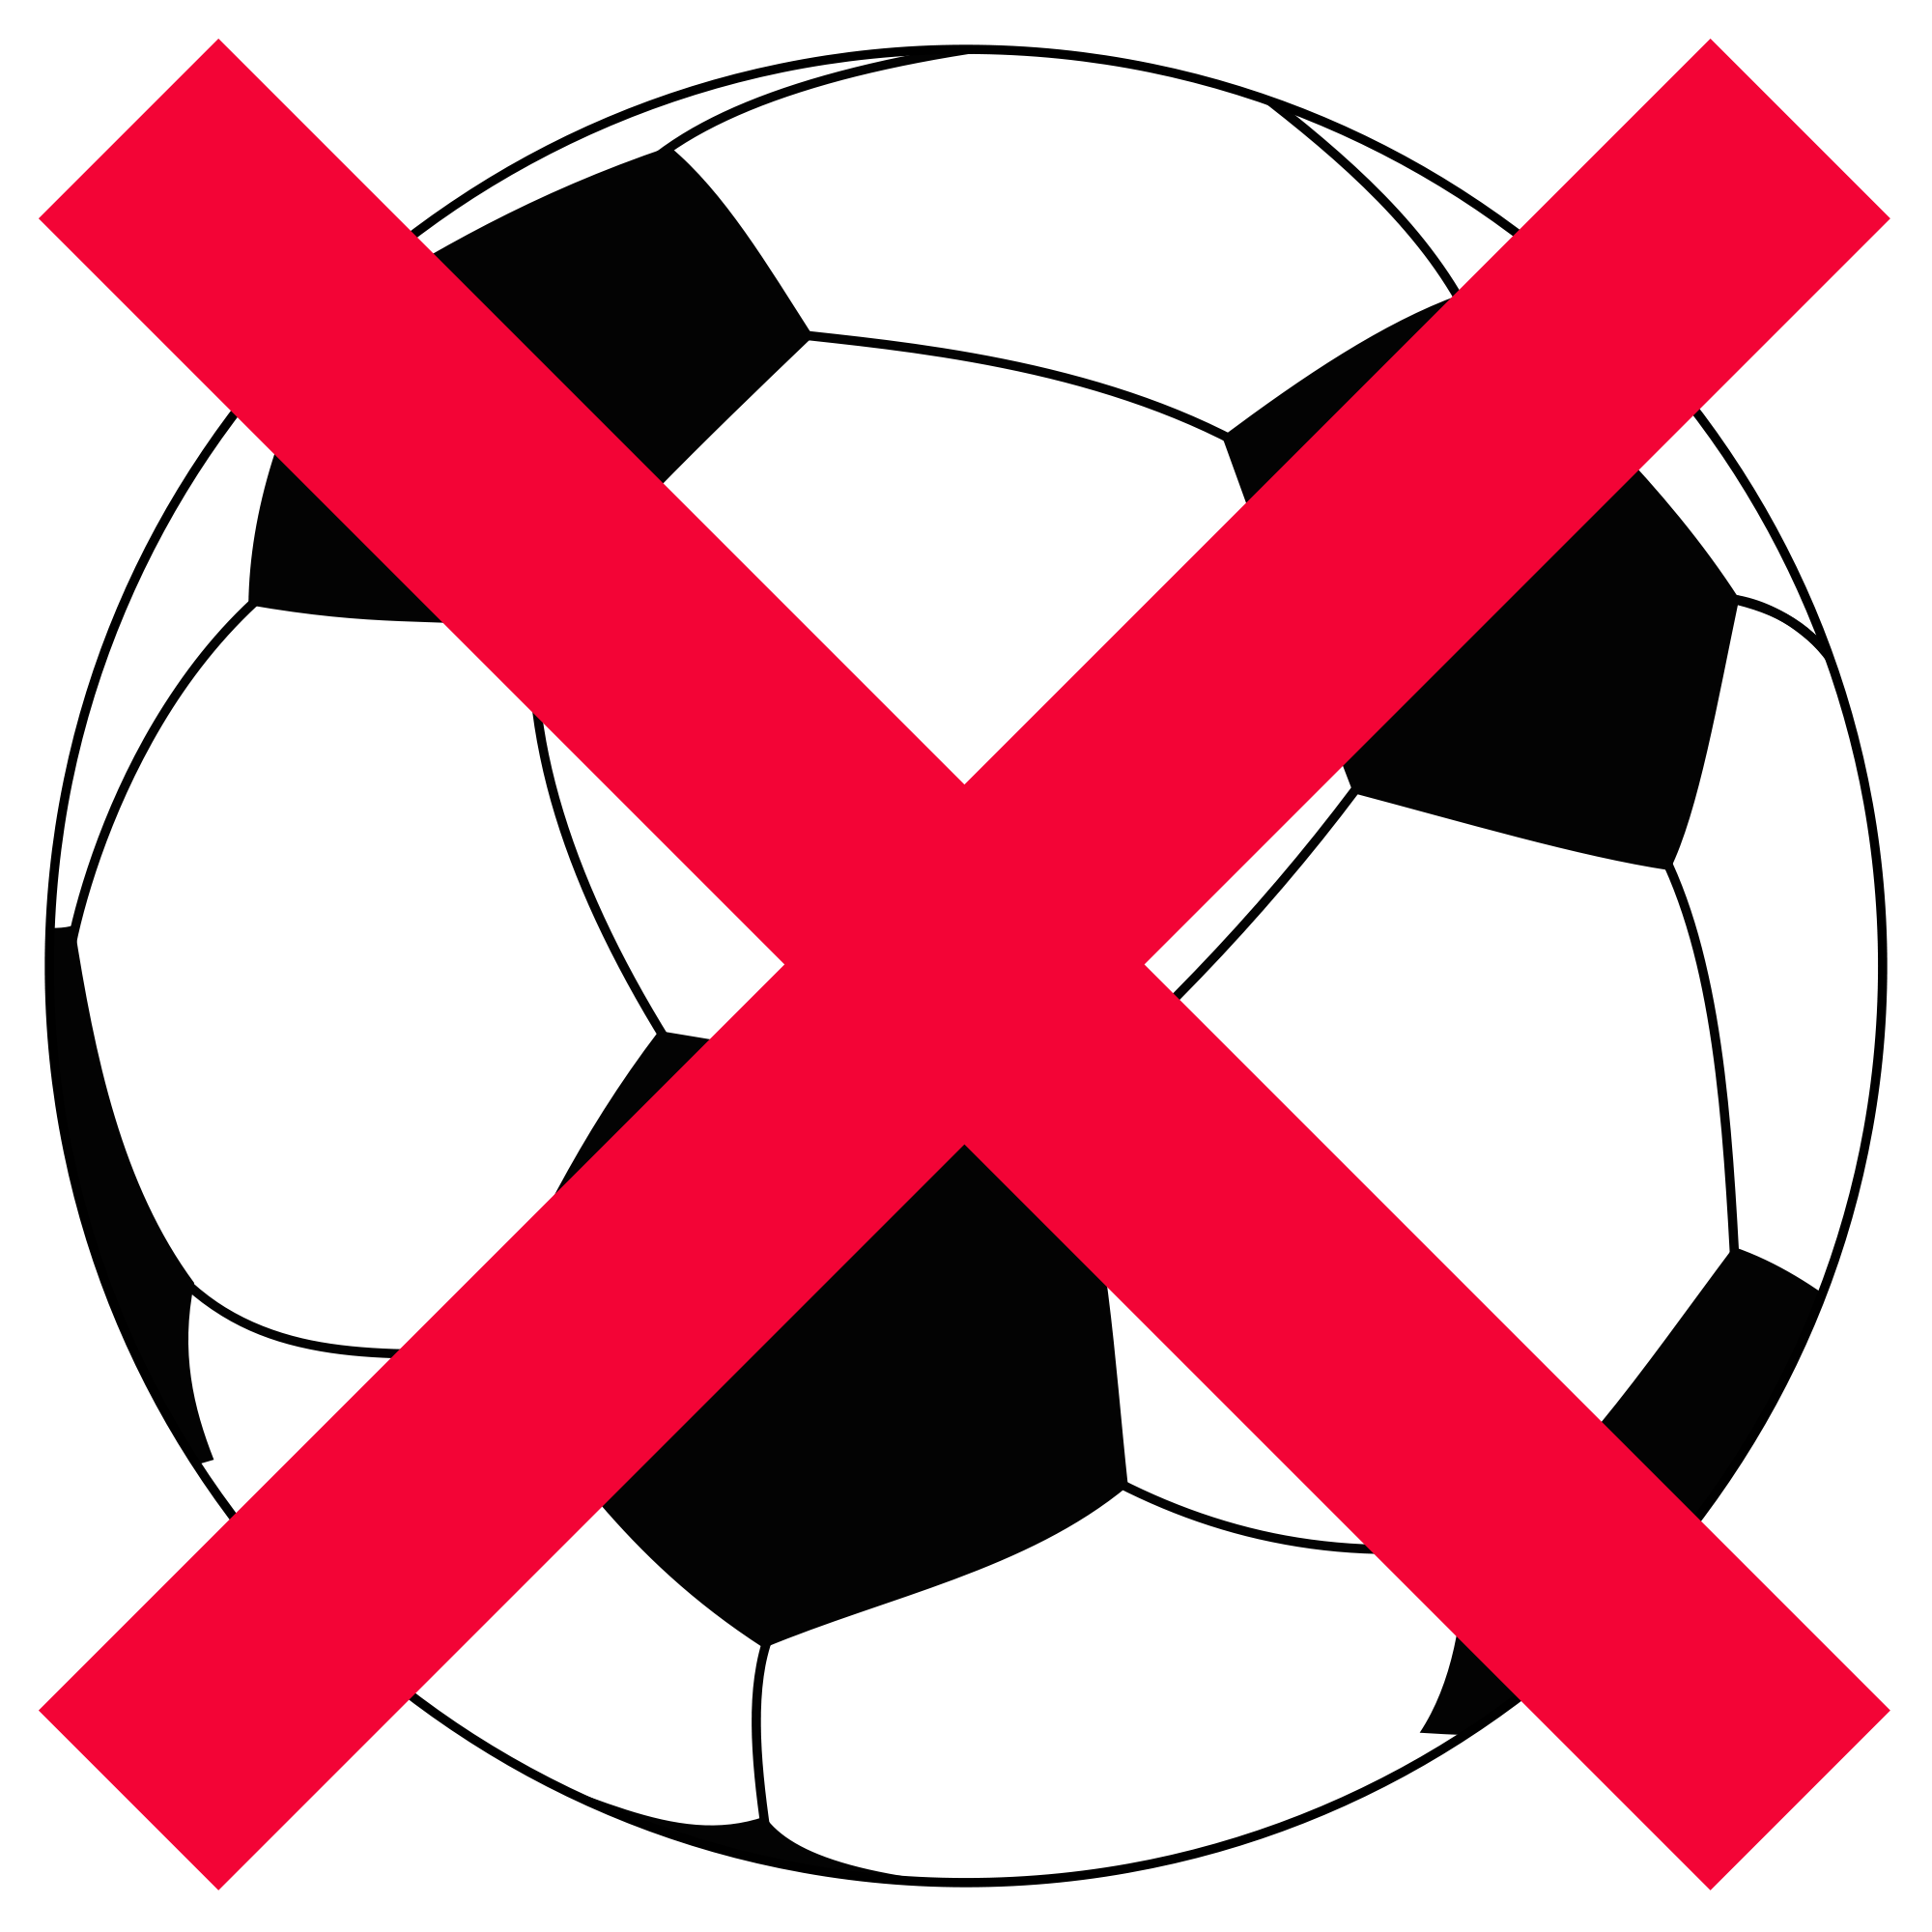 Football and cross clipart png transparent stock File:Football-NO.svg - Wikimedia Commons png transparent stock